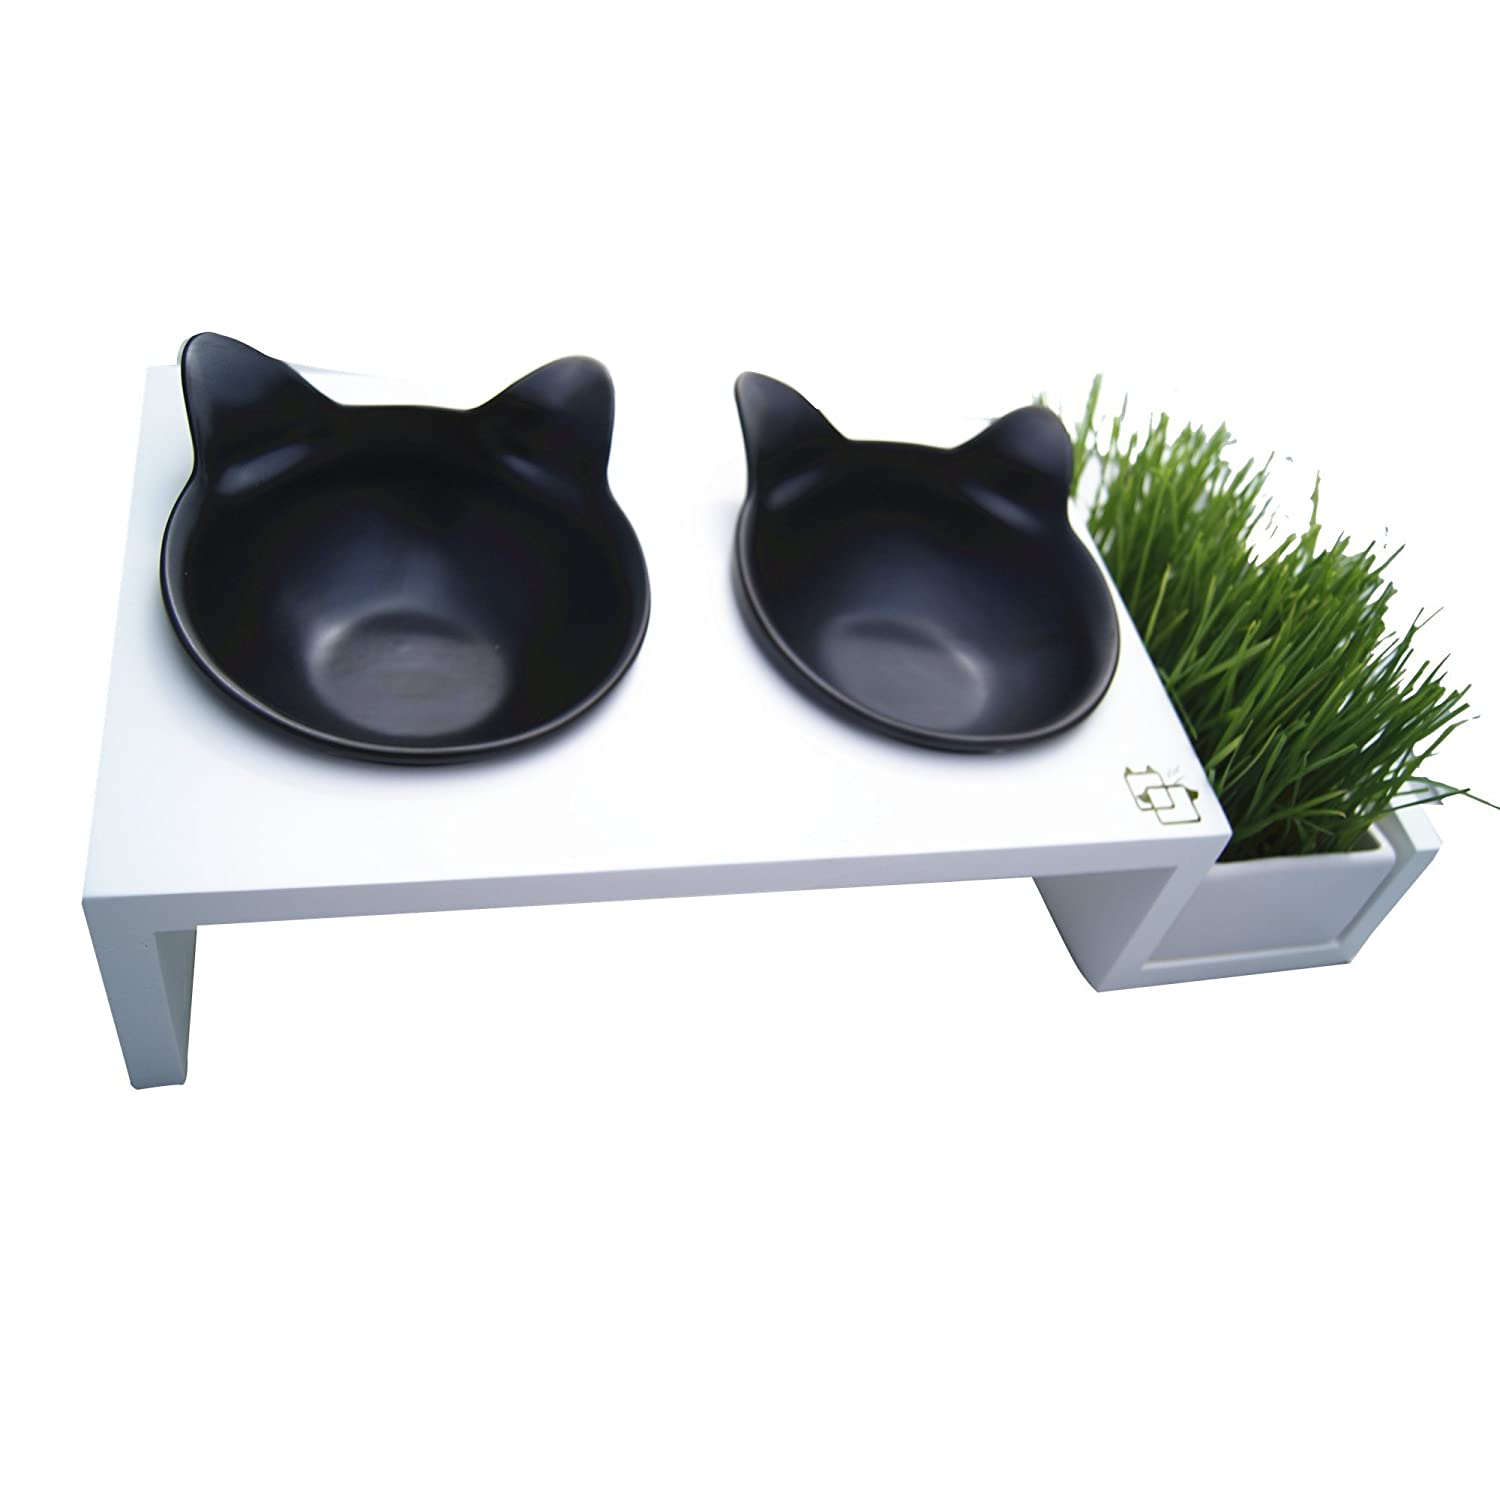 small for rise pet elevated bowl cat basis and smlrise main image products feeder dog stand bowls